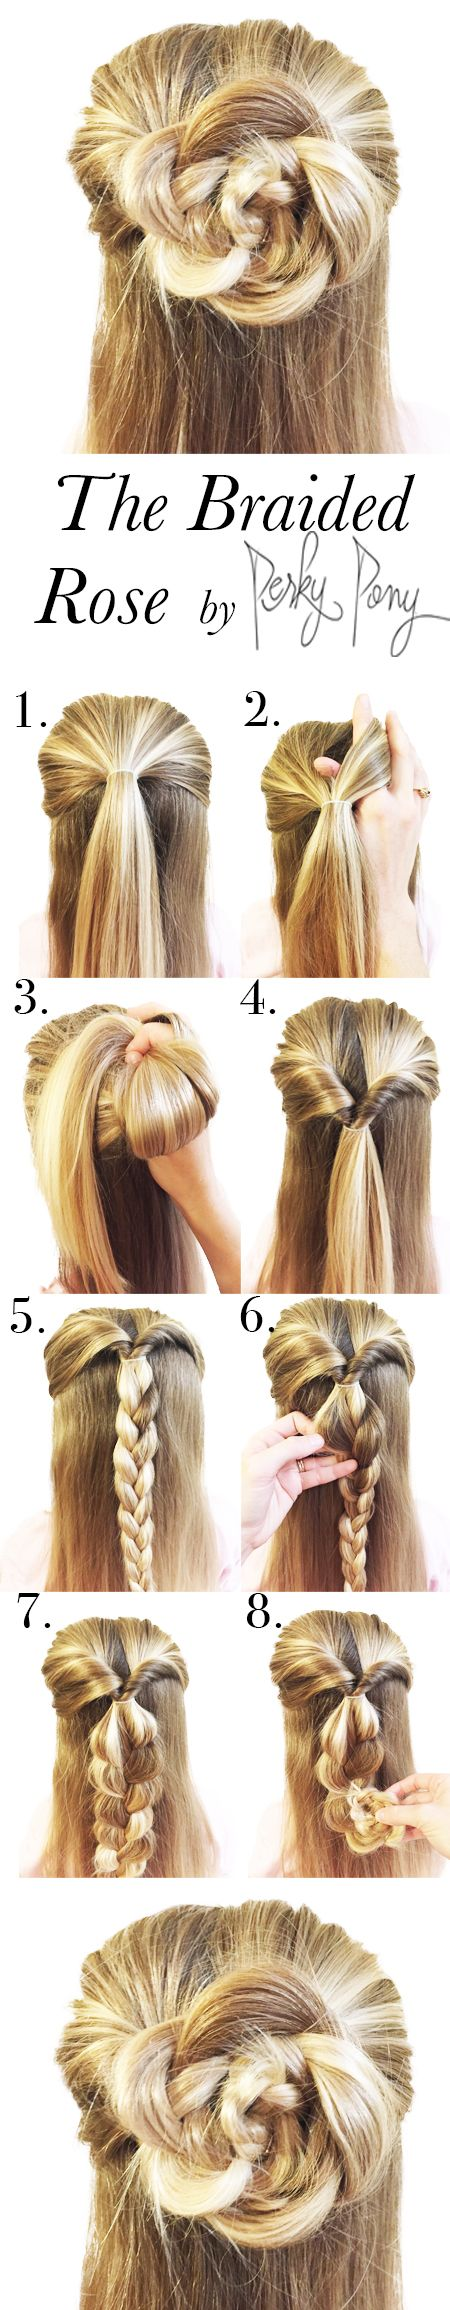 Miraculous 20 Simple And Easy Hairstyles For Your Daily Look Pretty Designs Short Hairstyles For Black Women Fulllsitofus